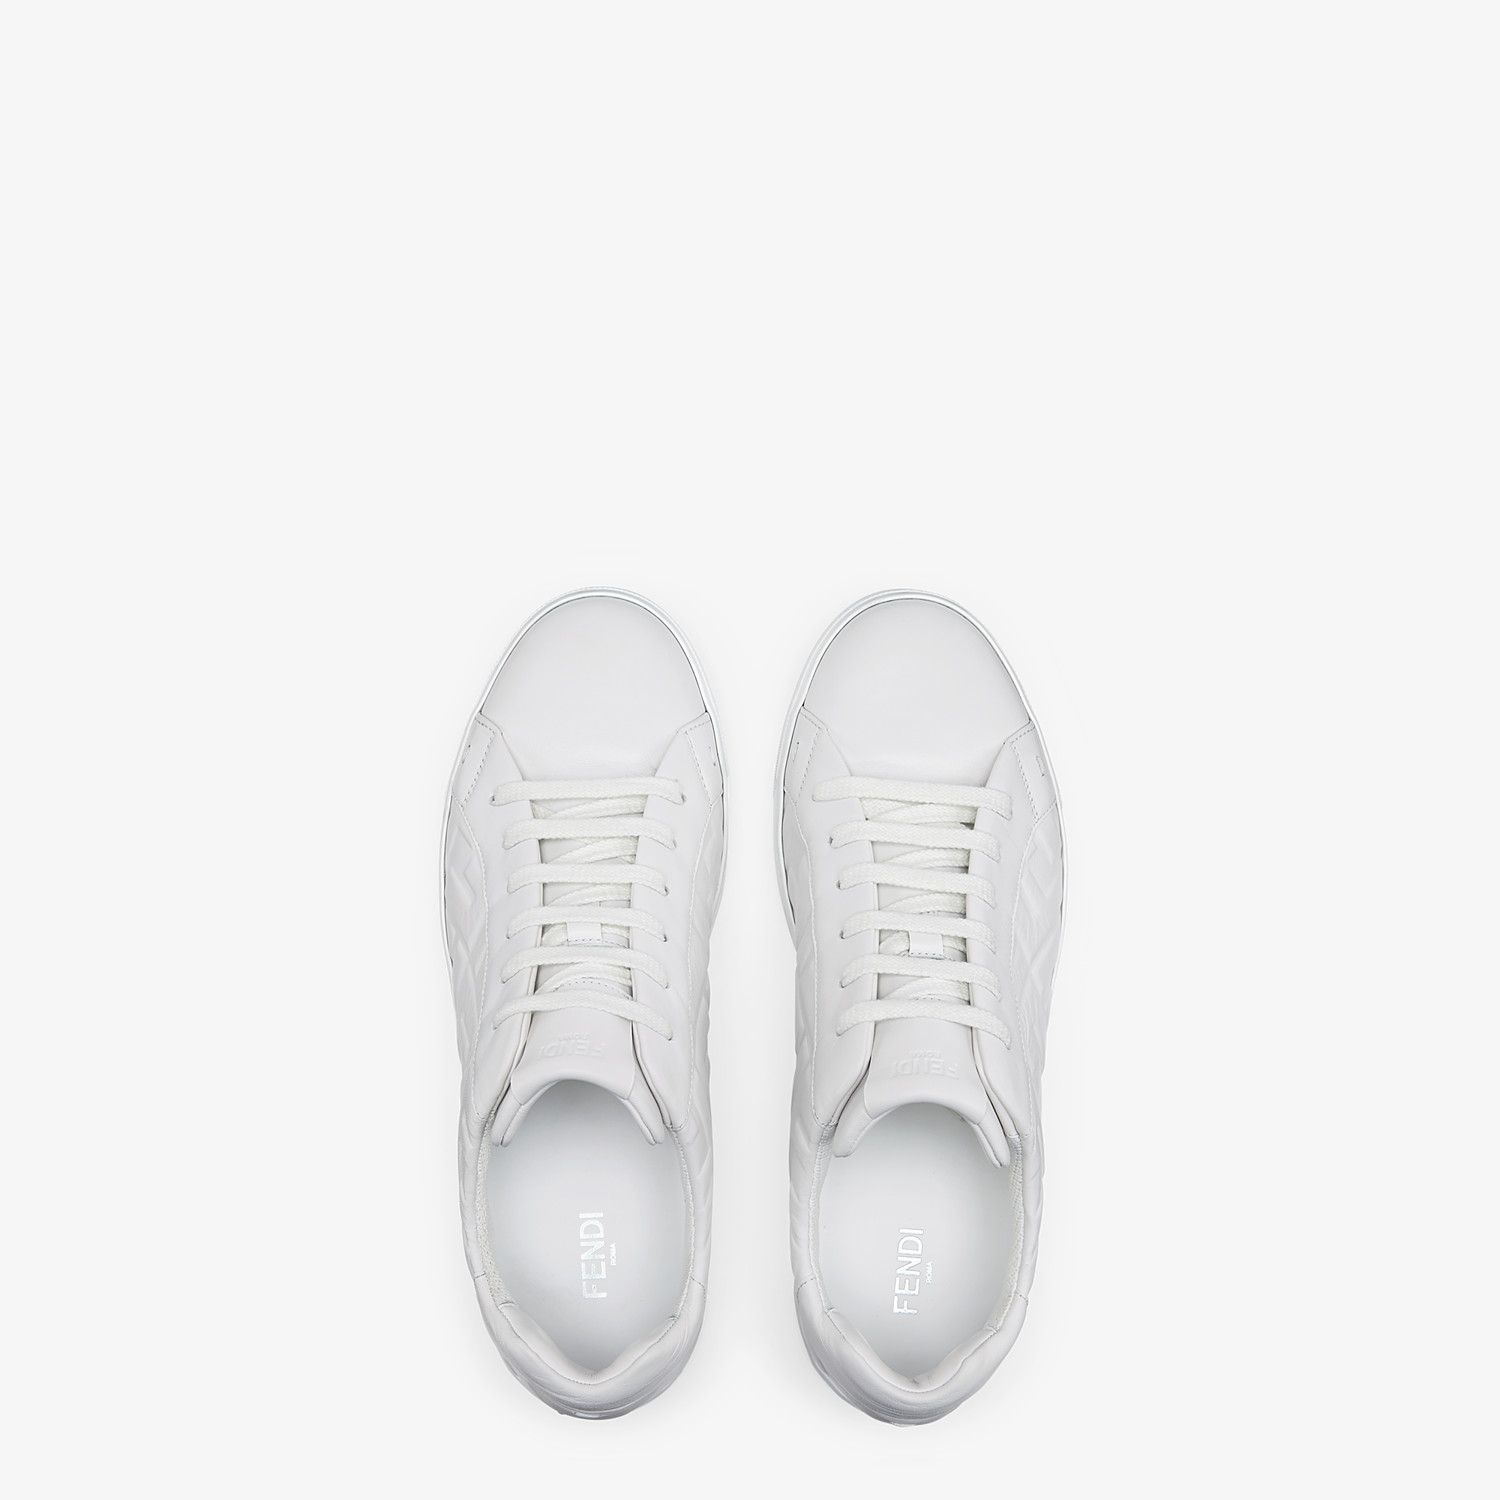 FENDI SNEAKERS - White nappa leather low-tops - view 4 detail